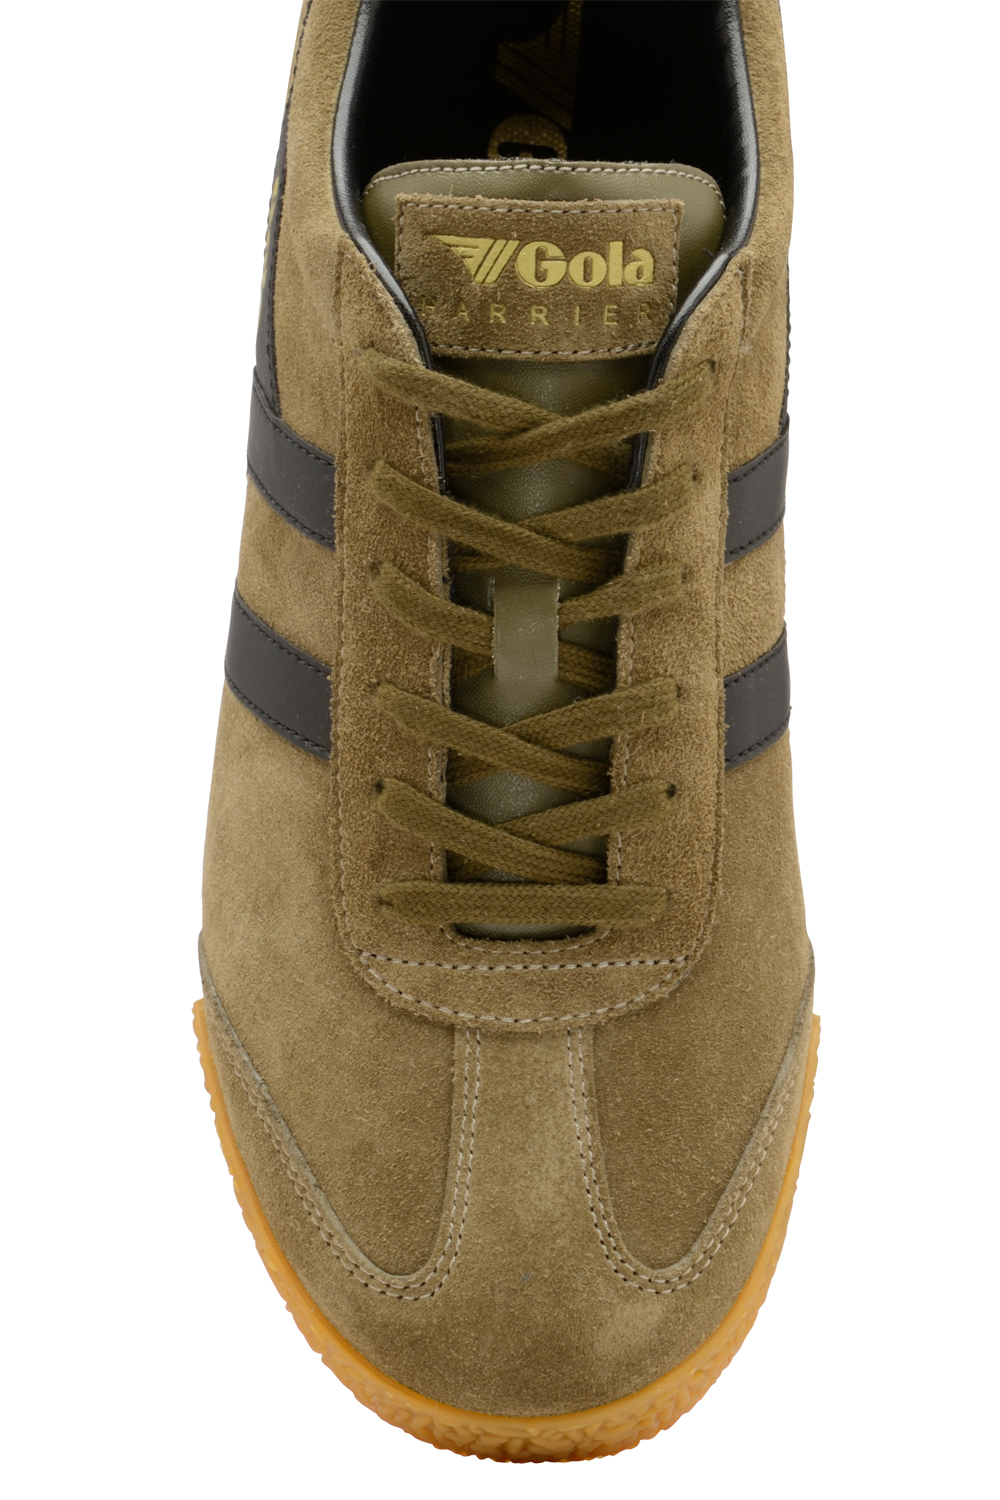 Gola-Harrier-Suede-Classic-Vintage-Lace-Up-Sneakers-Mens-Trainers-Low-Top-Shoes thumbnail 8